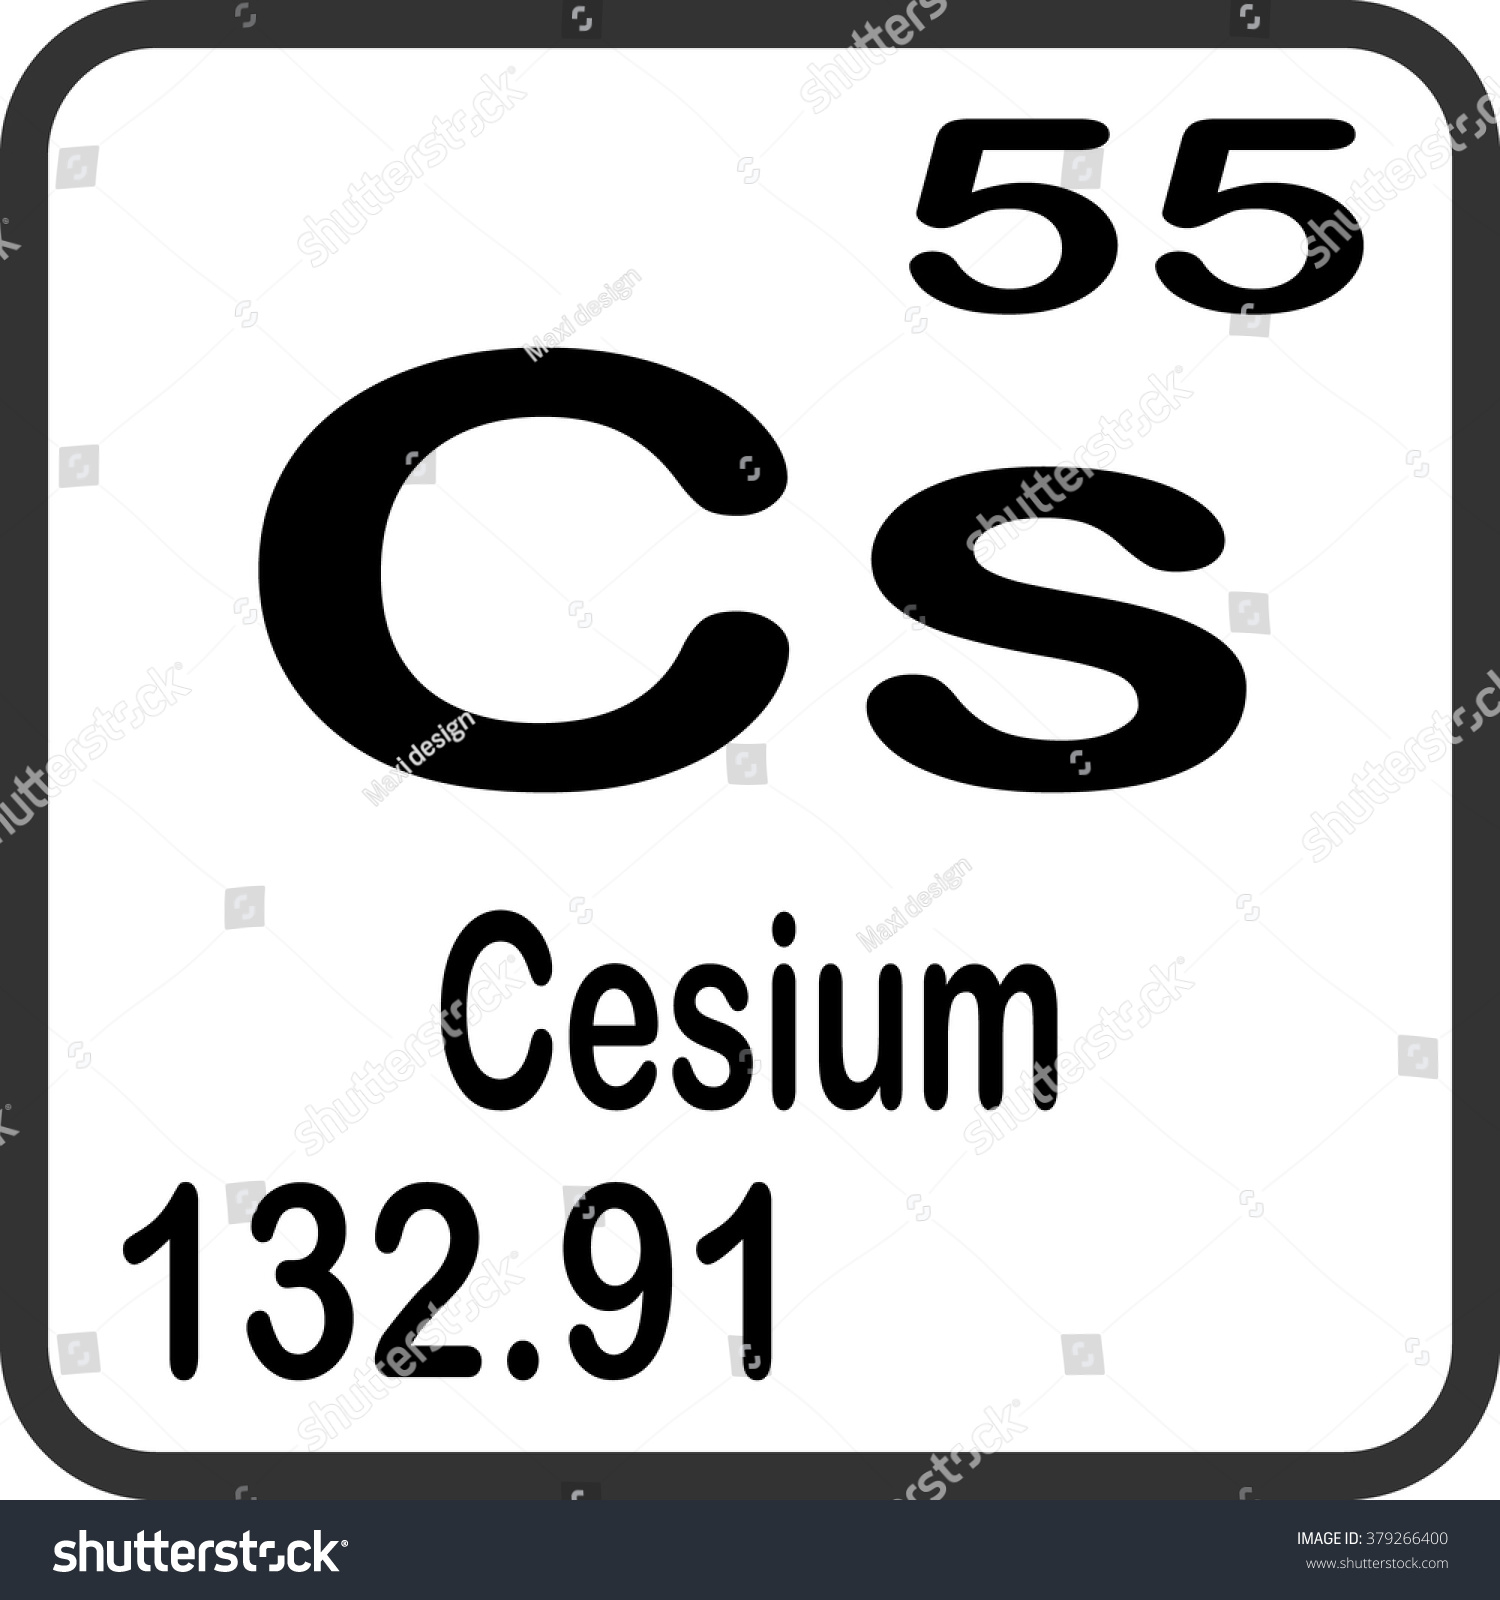 Periodic table elements cesium stock vector 379266400 shutterstock periodic table of elements cesium gamestrikefo Images